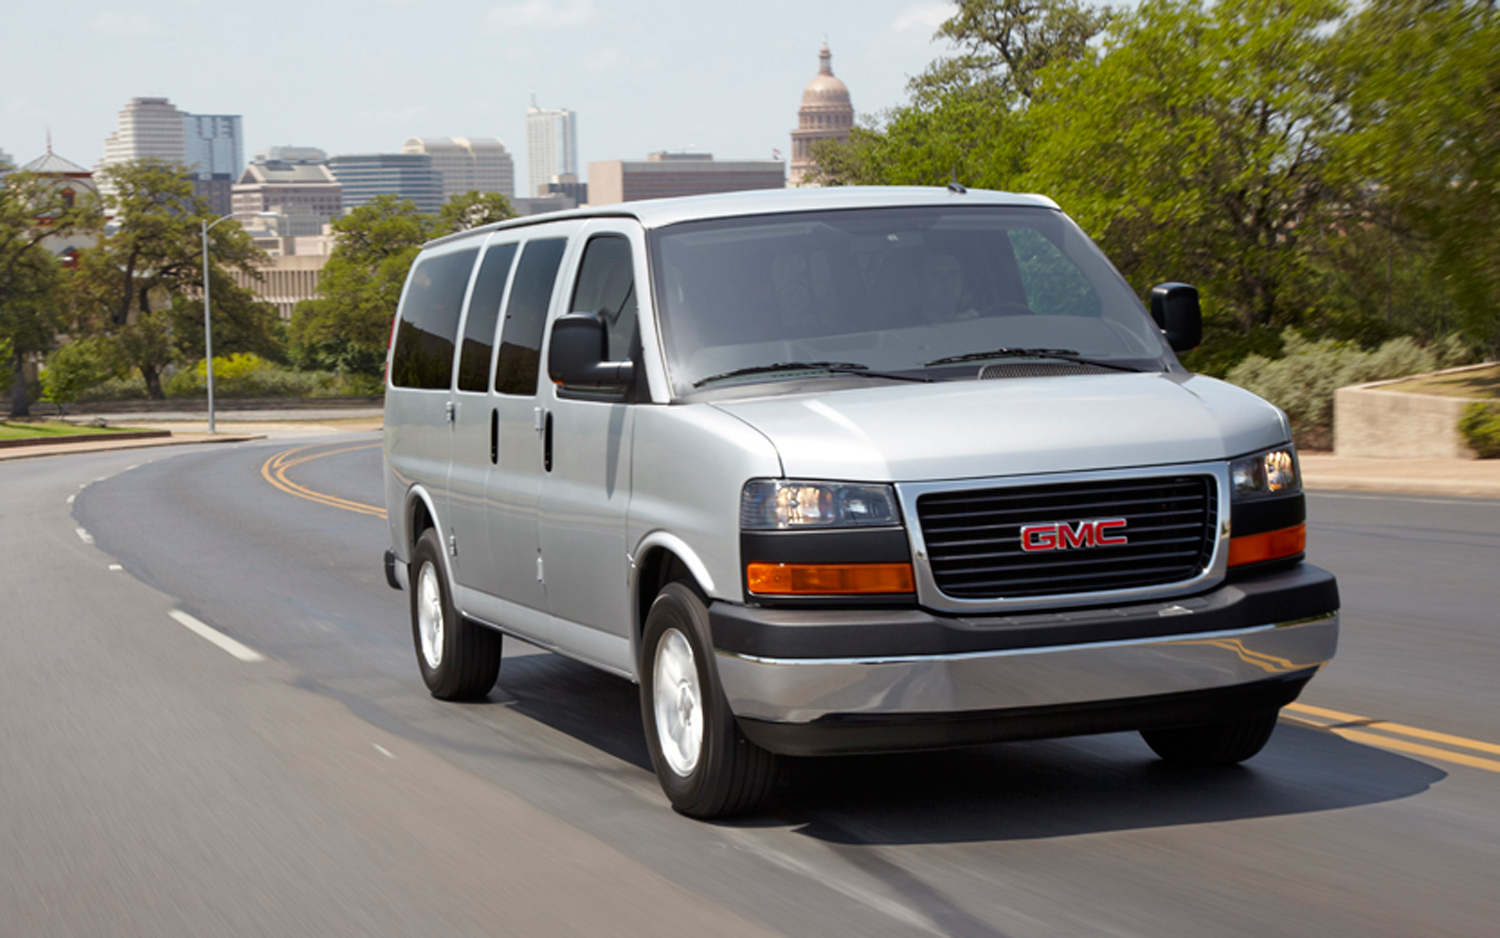 Gmc savana photo - 4